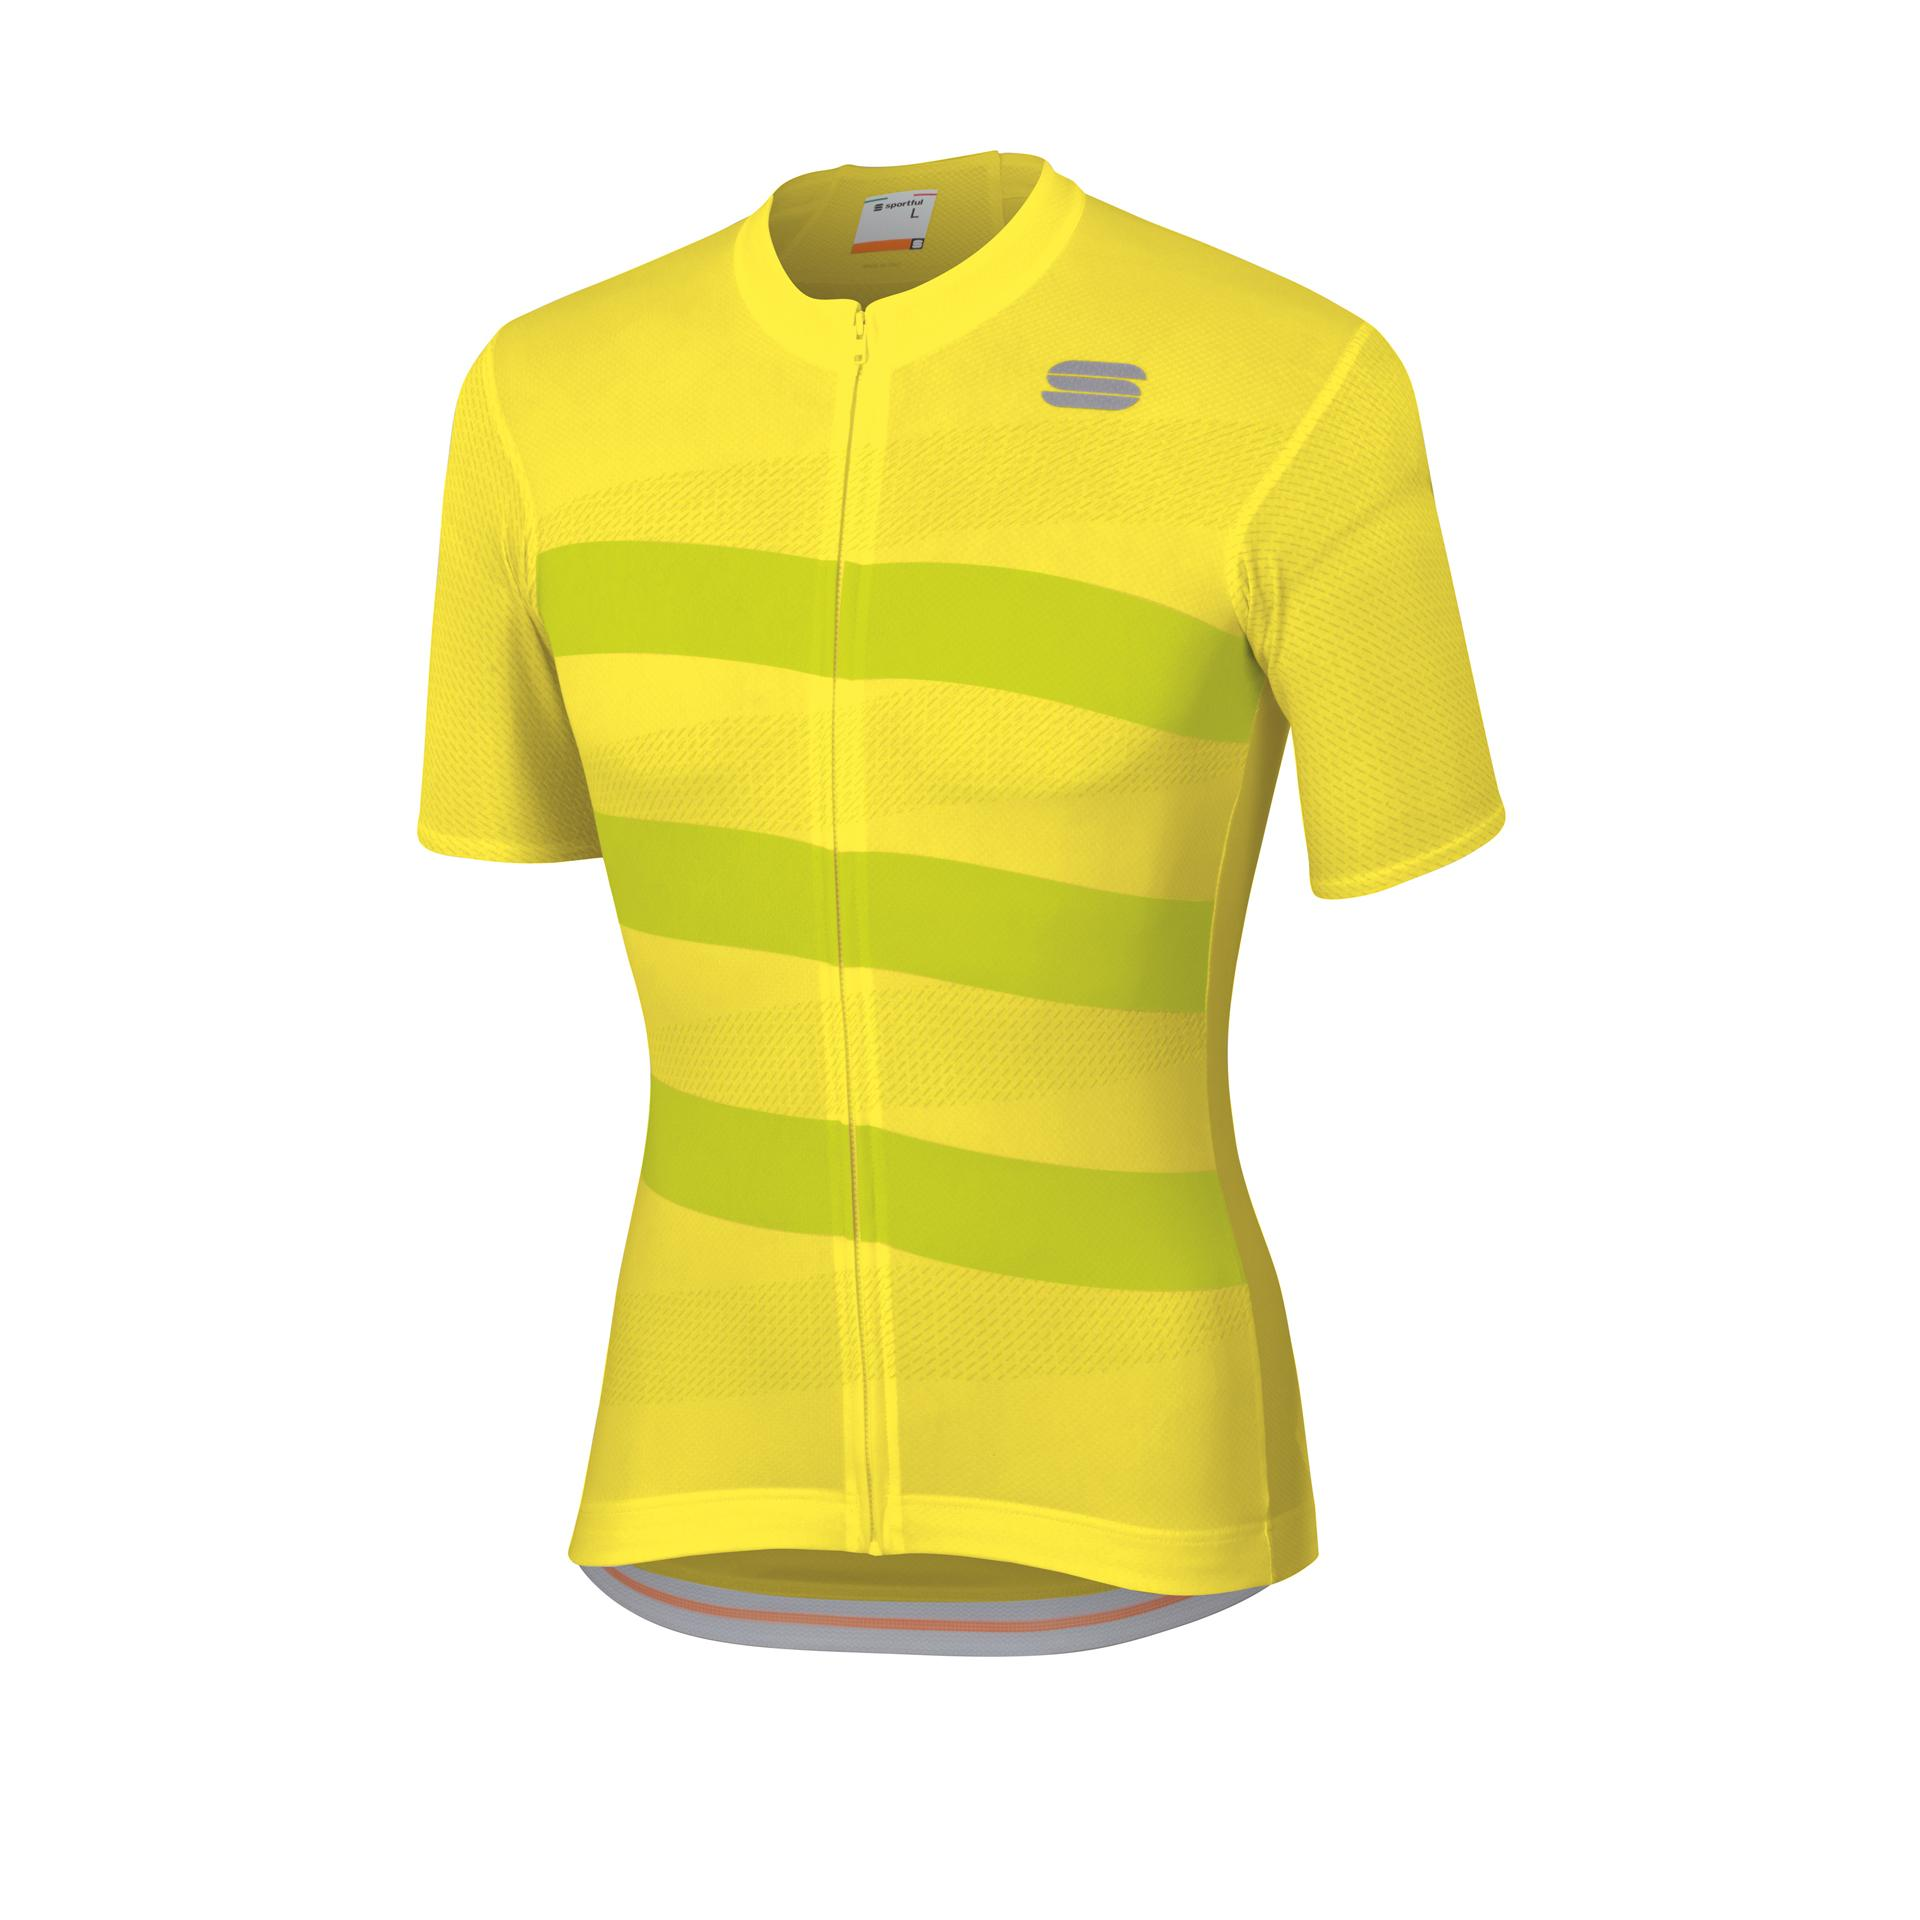 Sportful Fietsshirt korte mouwen Heren Geel  / SF Team 2.0 Ribbon Jersey-Tweety Yel/Yellow